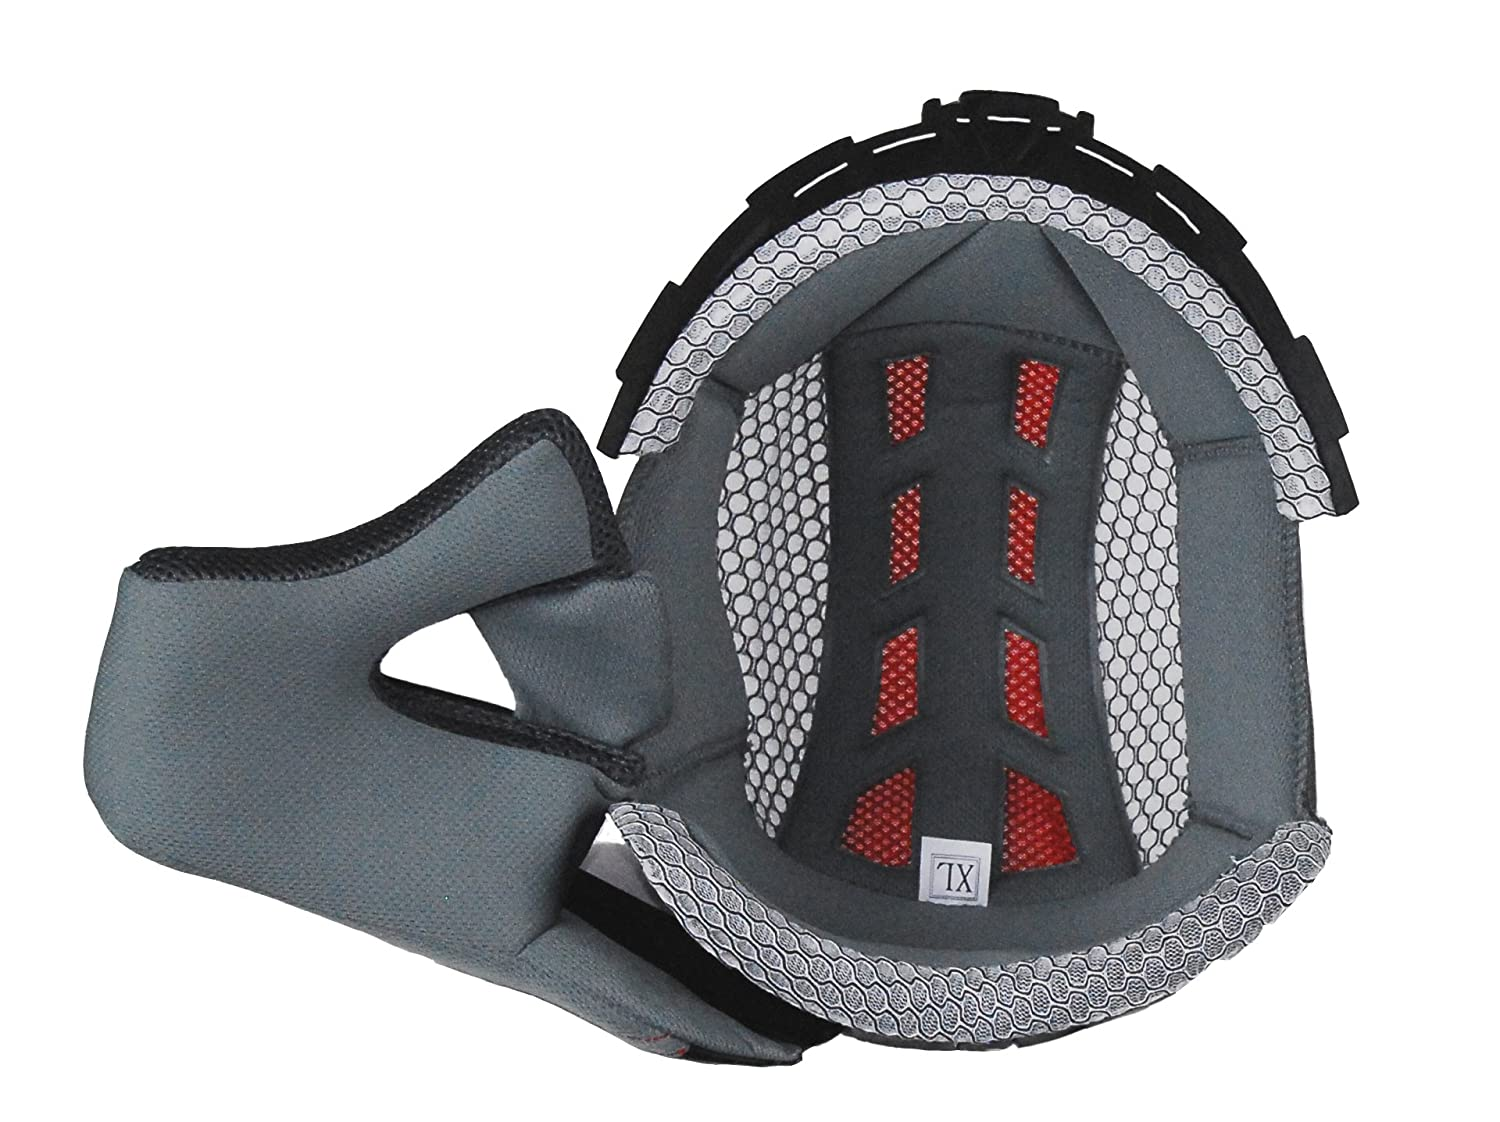 Vega Flyte Off-Road Helmet Liner (Gray, Large) 94-3204